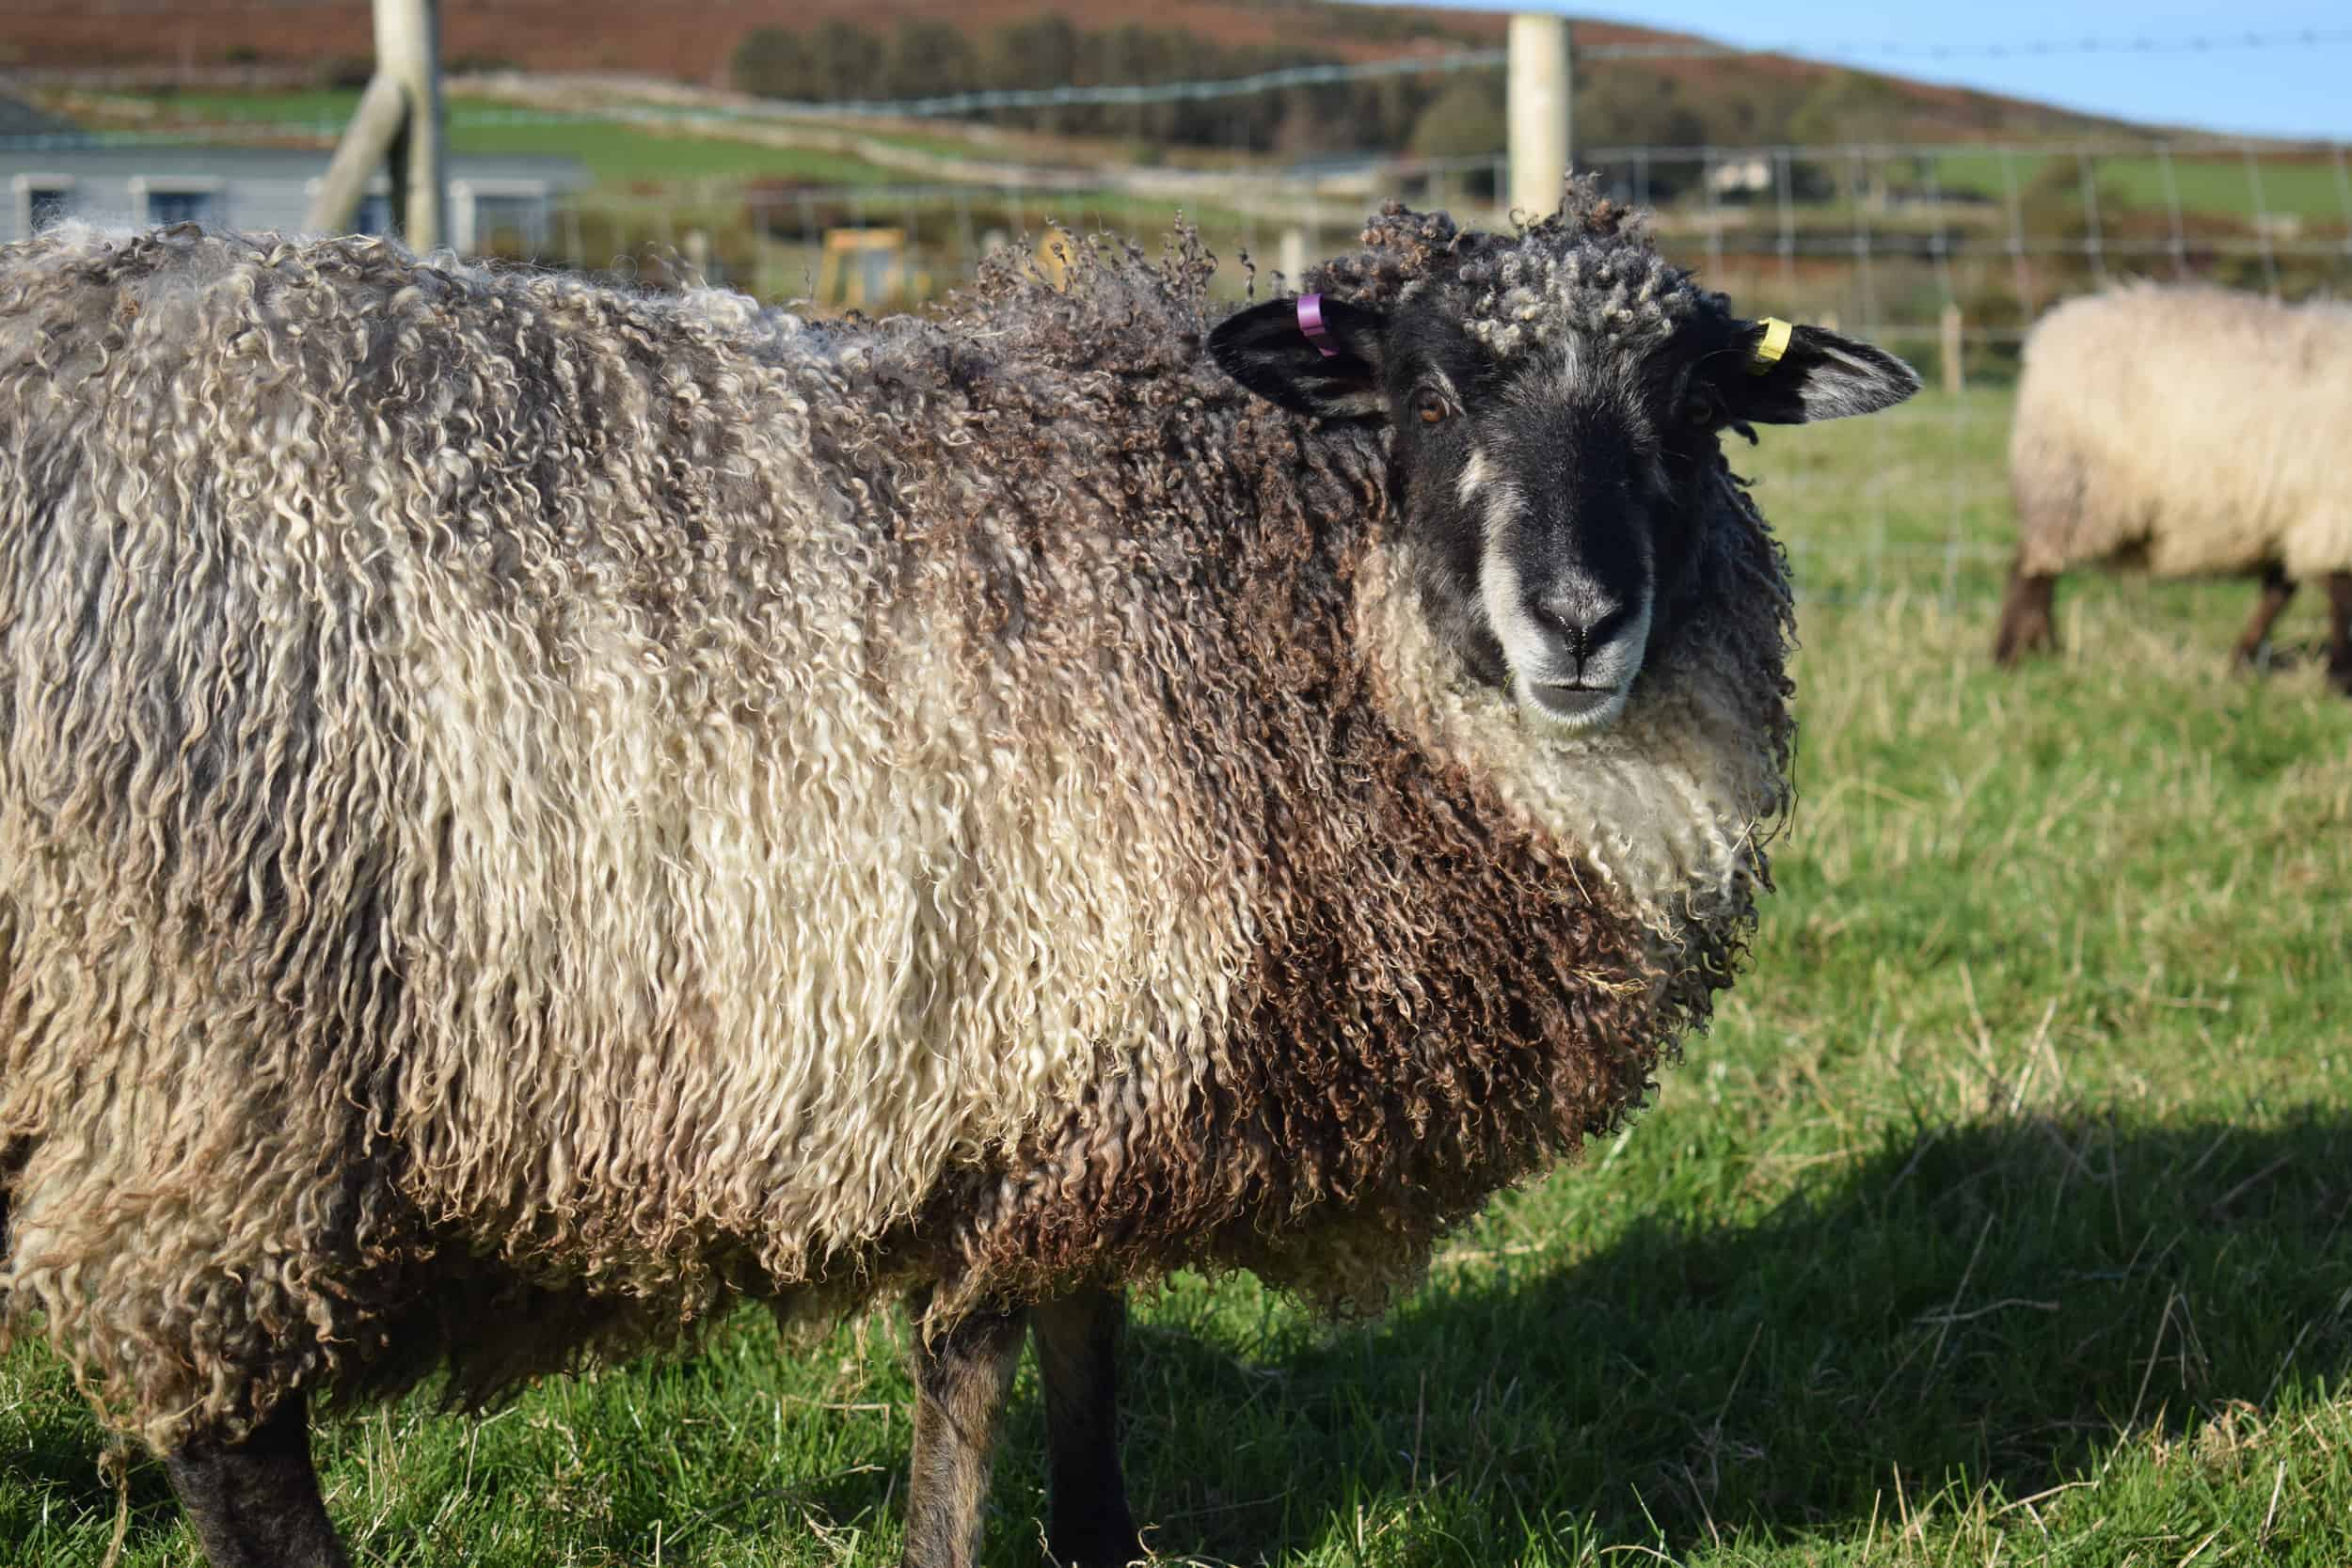 Jemima sheep farm animals coloured leicester longwool gotland sheep shetland ewe lamb kind fibre british wool grey felted fleece